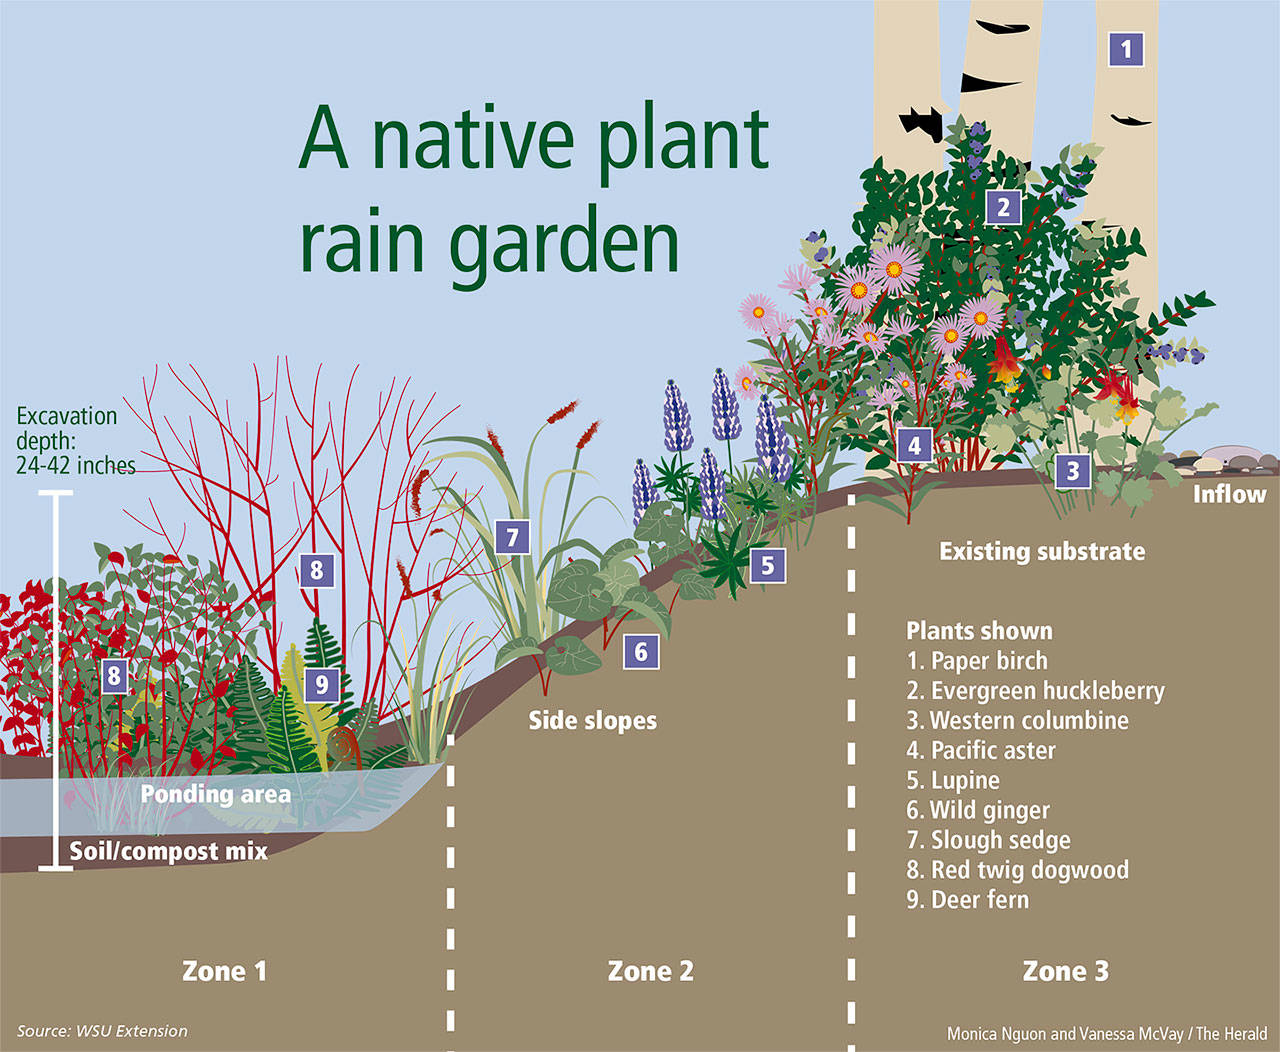 Rain gardens: Nature's sponge | Bot-Kenmore Reporter on rain illustration, rain barrels, bioswale design, rain gardens 101, rain art drawings, rain gutter downspout design, rain roses, gasification design, rain harvesting system design, french drain design, dry well design, rain water design, rain construction,